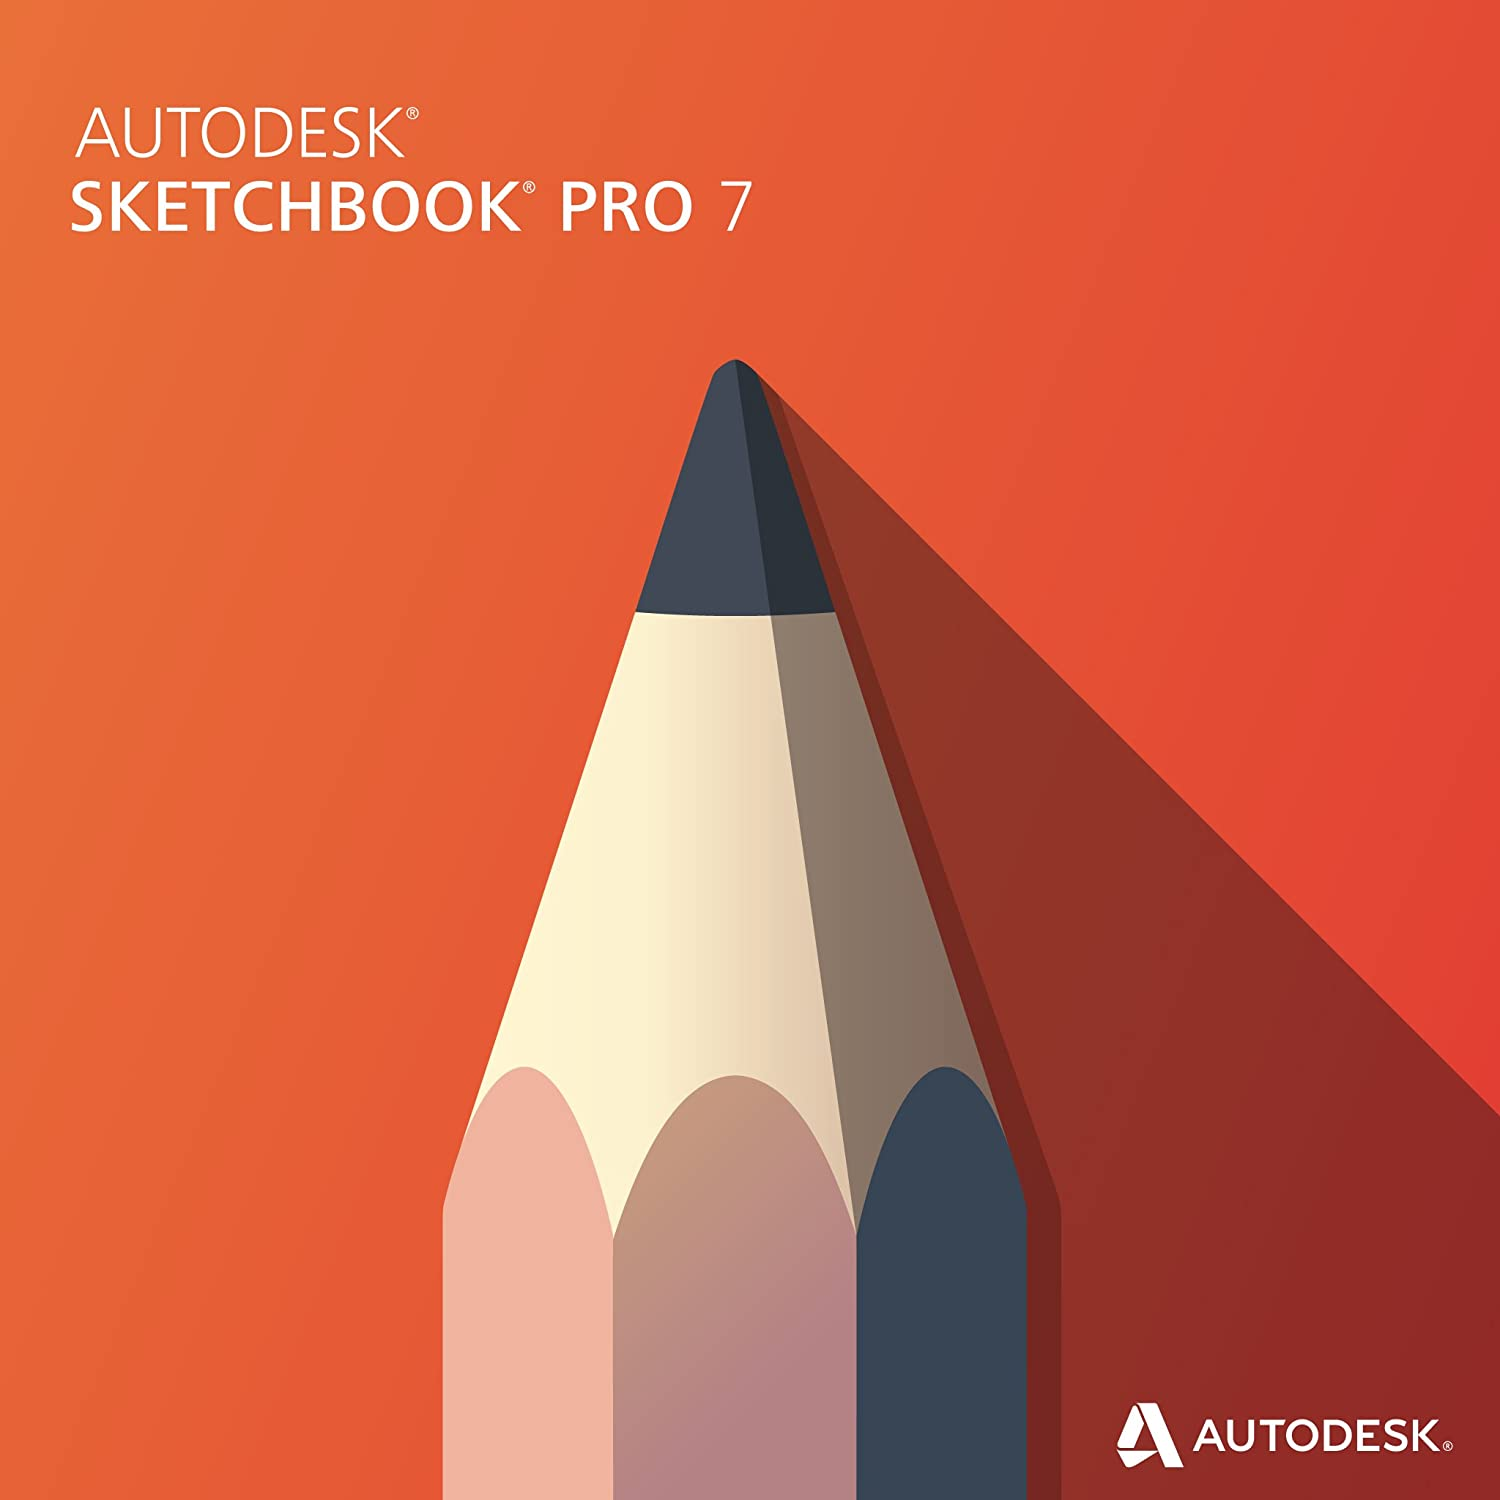 SketchBook Pro - draw and paint 3.6.0 Apk For Android Download